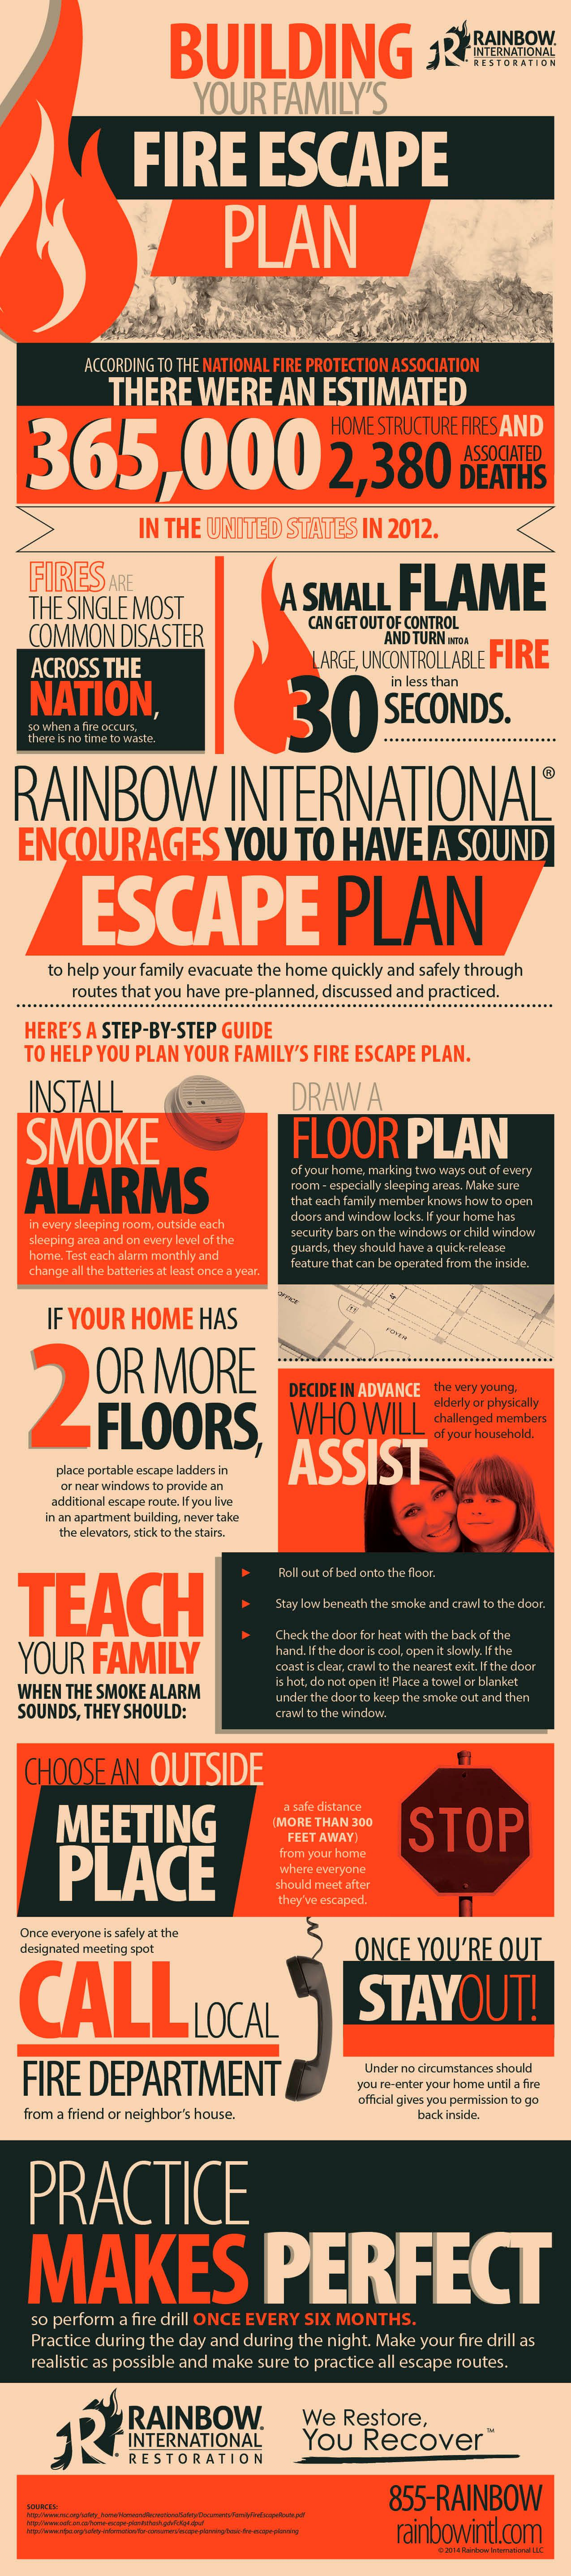 Prepare and Practice A Fire Escape Plan Fire escape